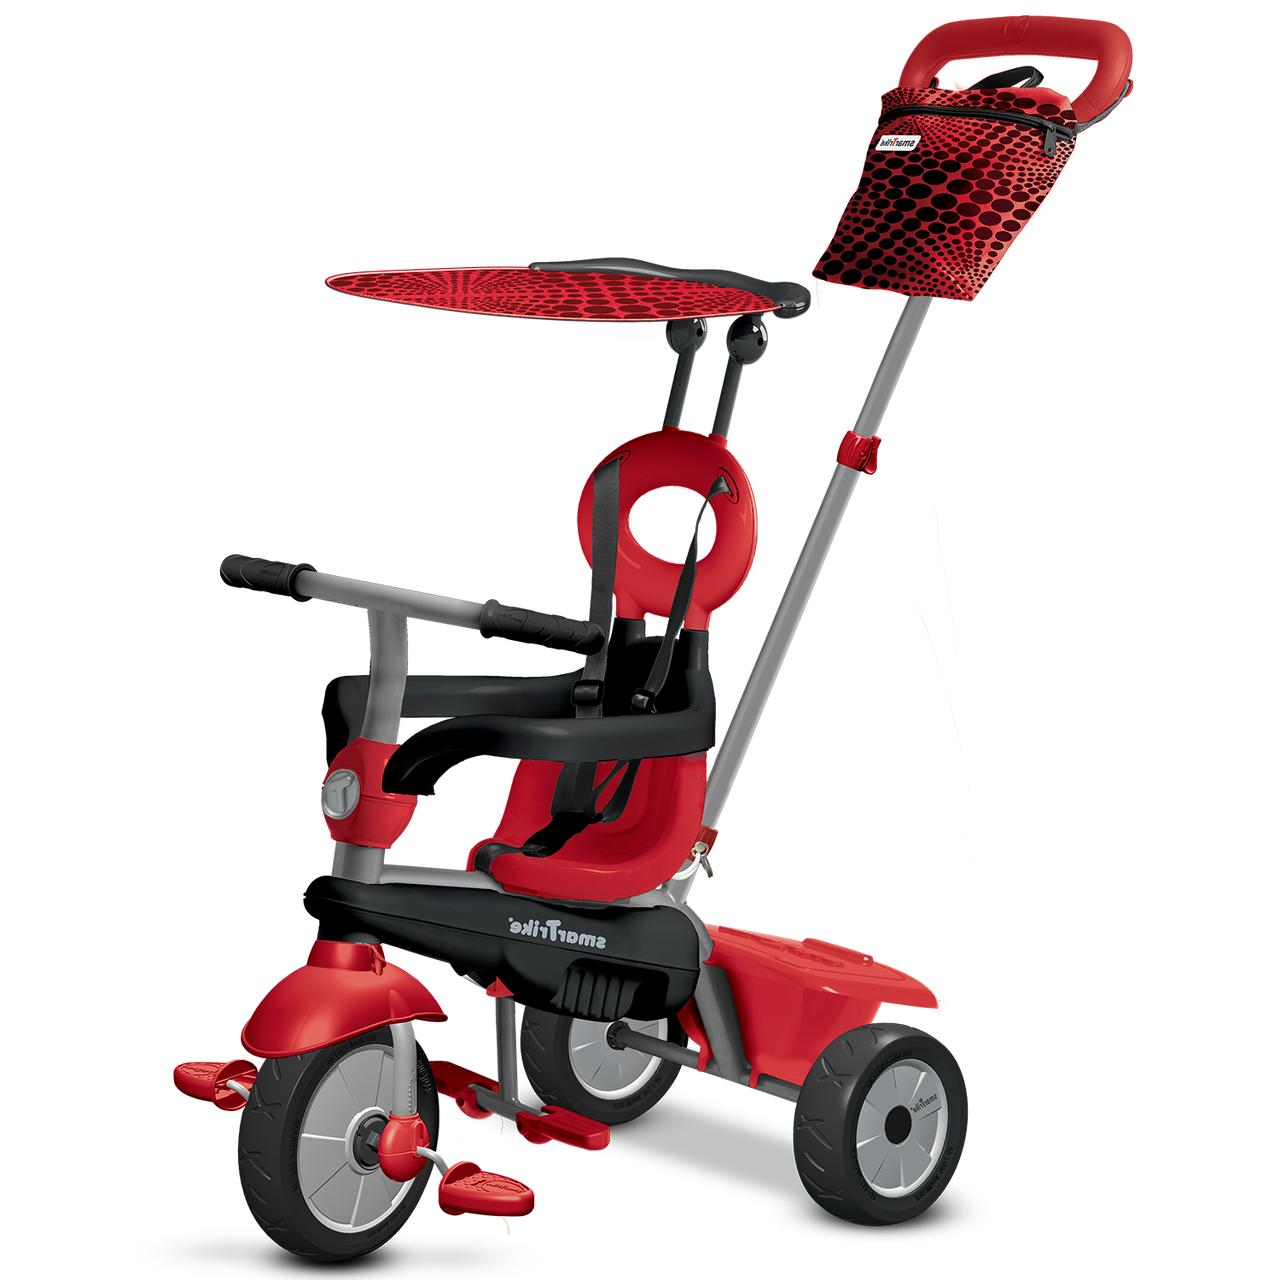 smarTrike Vanilla 4-in-1 Tricycle Baby toddler 10-36 months